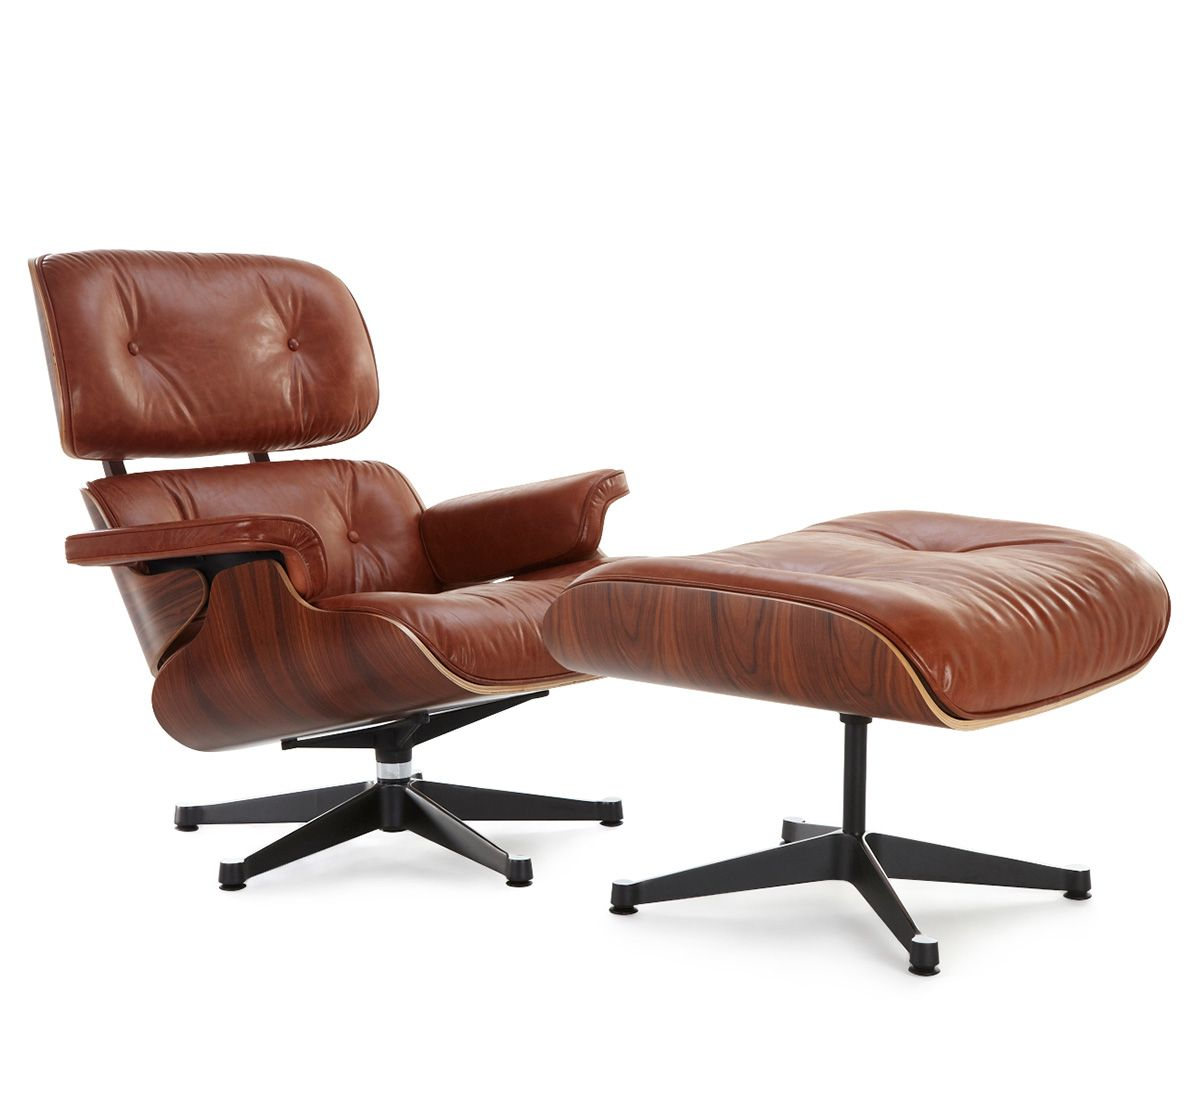 Classic Lounge Chair & Ottoman Antique Brown Chair